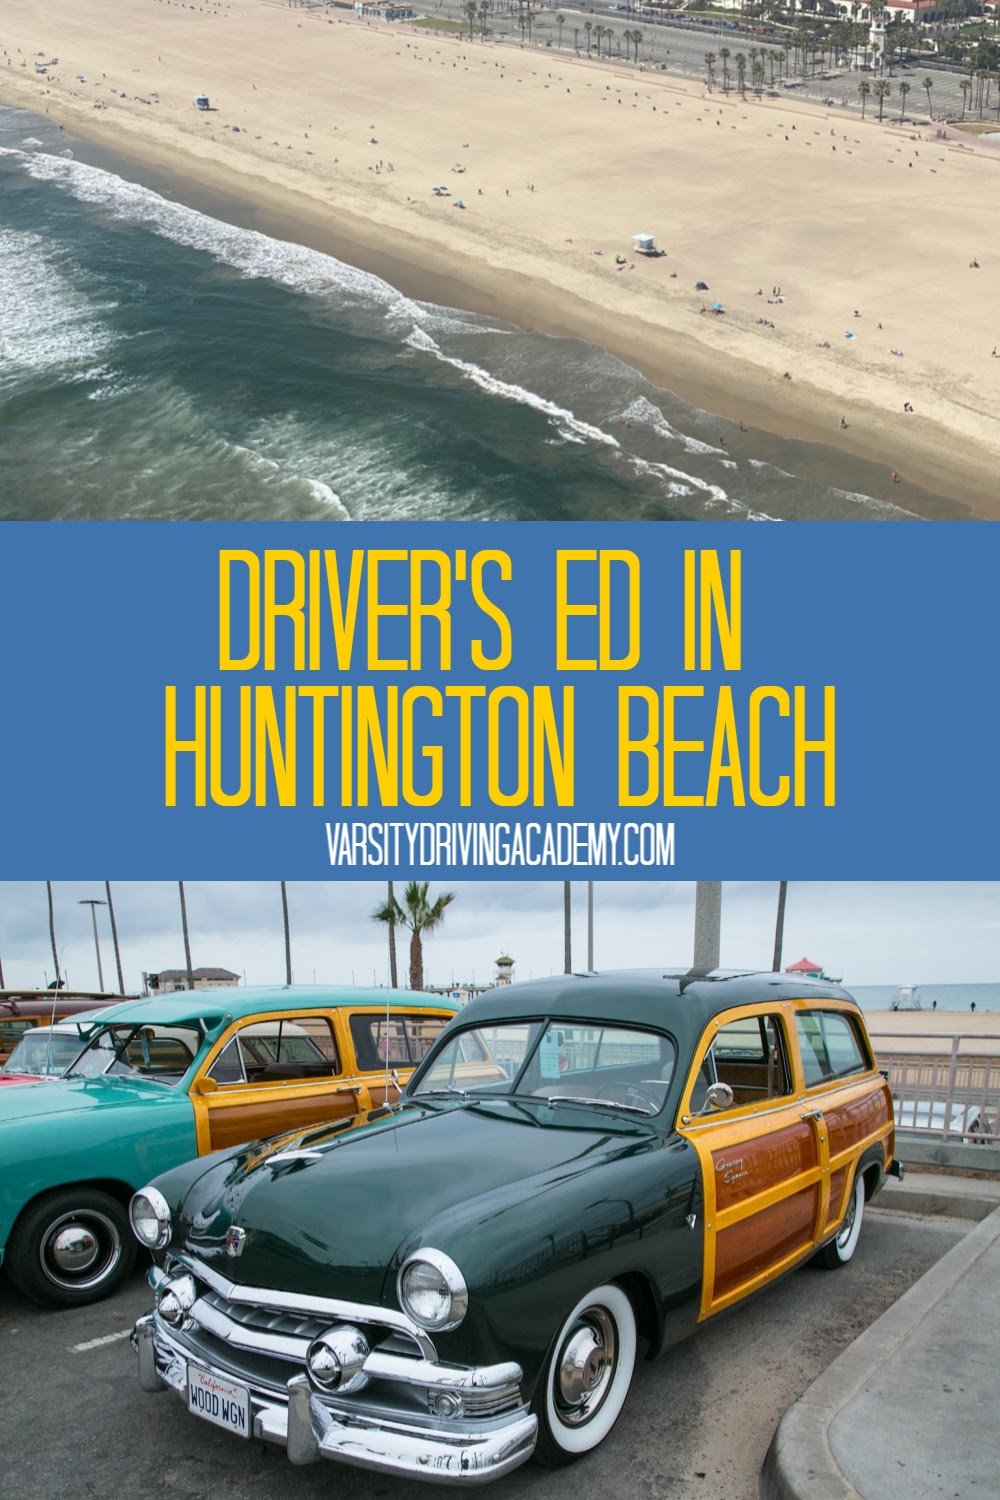 The best drivers ed in Huntington Beach where you can learn how to drive in Orange County safely and confidently so you can pass your test at the Huntington Beach DMV.